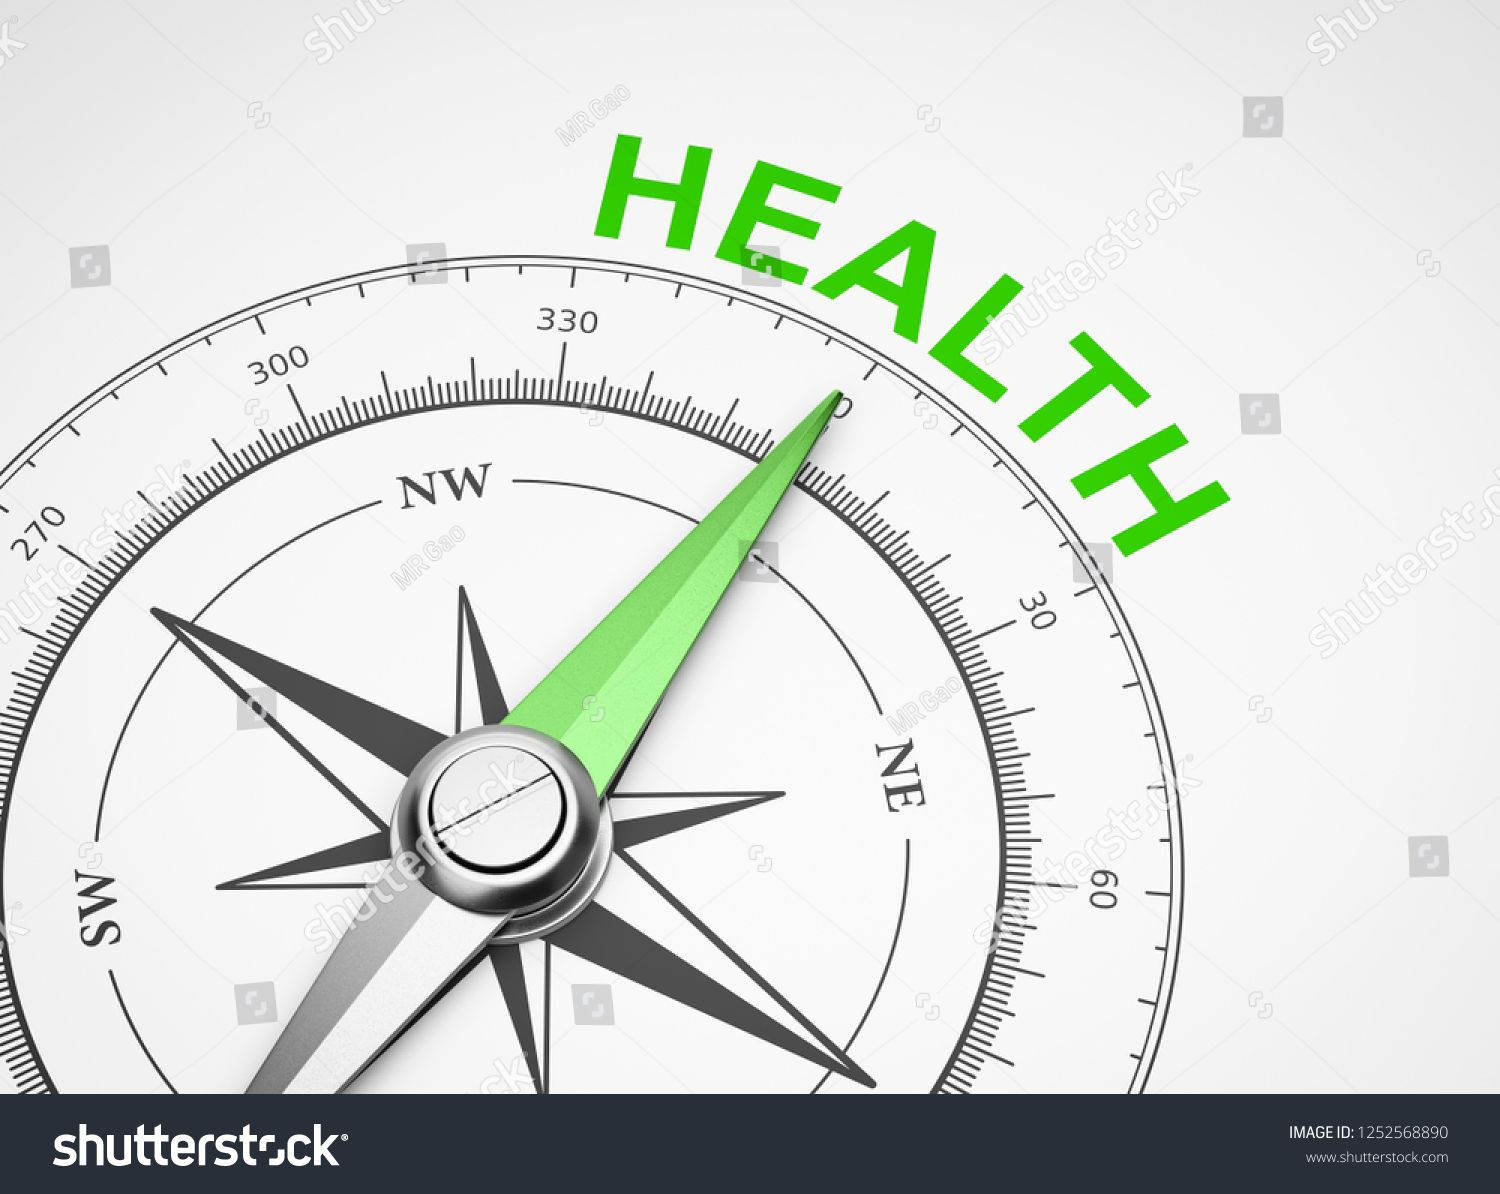 Magnetic Compass With Needle Pointing Green Health Word On White Background 3d Illustration Pointing Green Needle Magnetic Compass Health Words Compass Needle